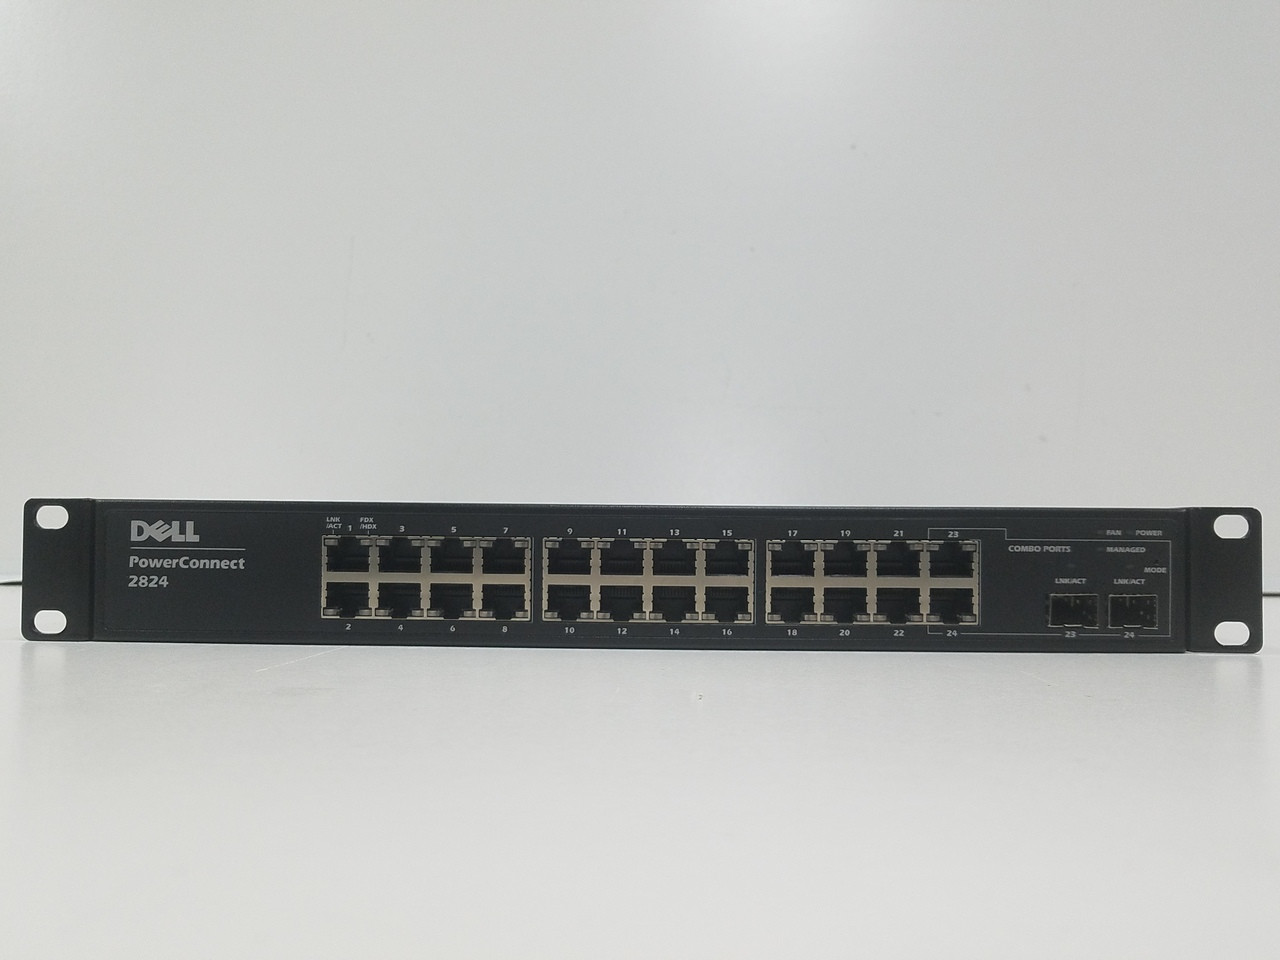 Dell PowerConnect 2824 24-Port Managed Ethernet Switch